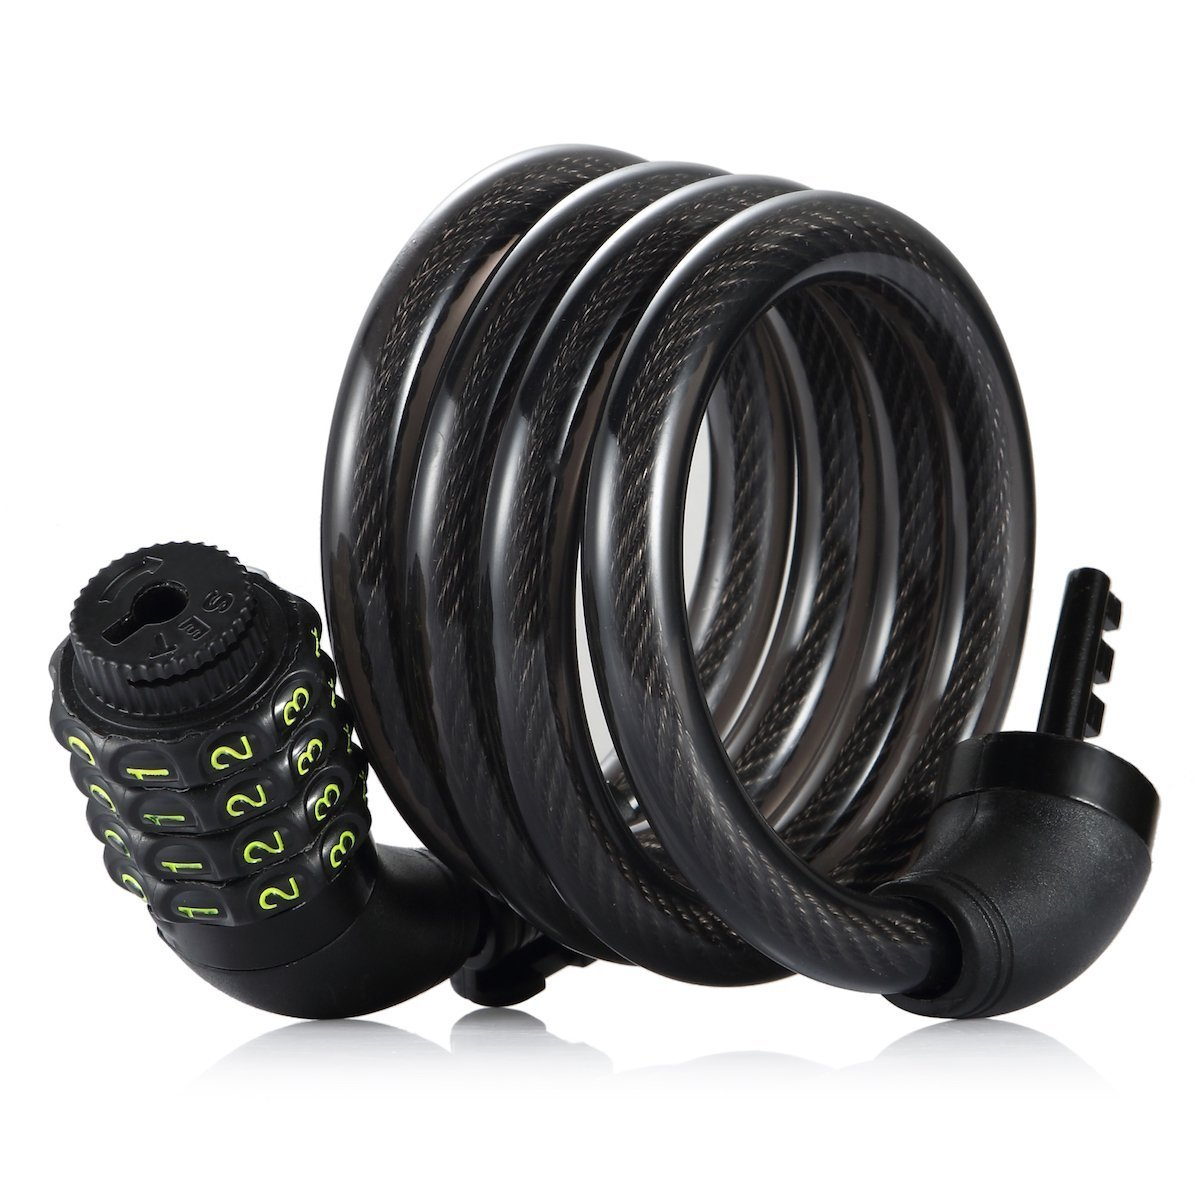 Amazer Bike Cable Lock, 6-Feet Bike Lock Cable Coiled Resettable Combination Cable Bike Locks with Mounting Bracket, 6 Feet x 1/2 Inch by Amazer (Image #3)